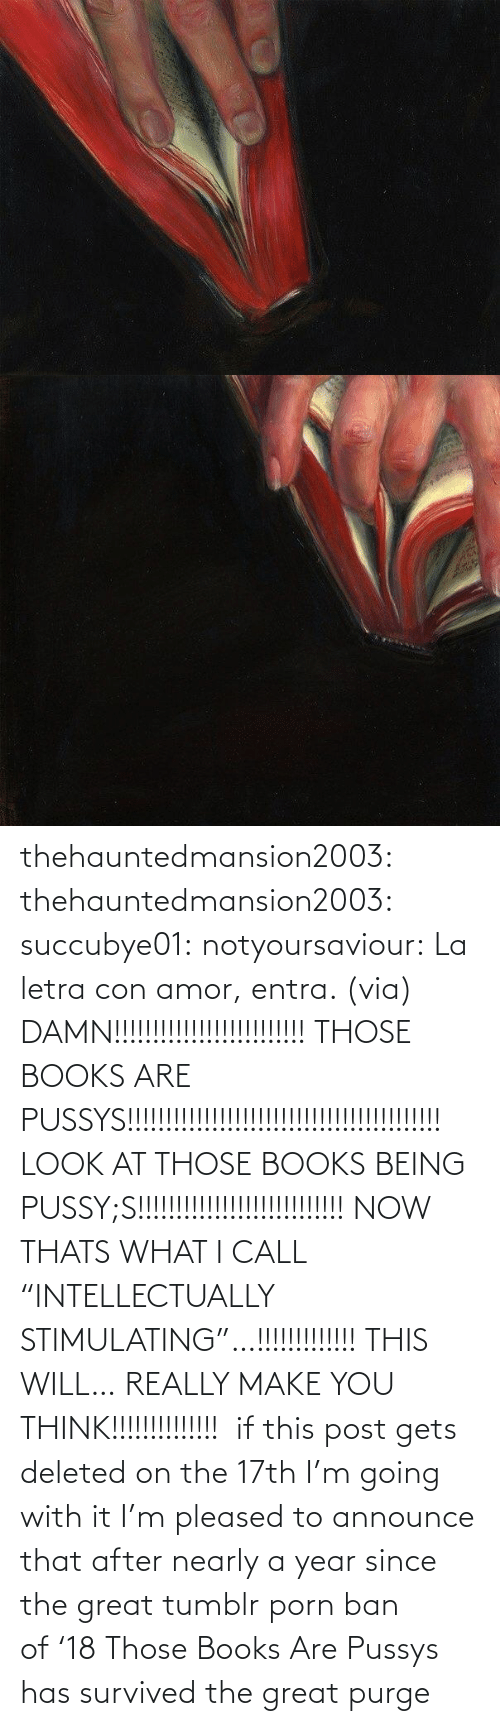 "Porn: thehauntedmansion2003: thehauntedmansion2003:  succubye01:  notyoursaviour:  La letra con amor, entra. (via)  DAMN!!!!!!!!!!!!!!!!!!!!!!!!! THOSE BOOKS ARE PUSSYS!!!!!!!!!!!!!!!!!!!!!!!!!!!!!!!!!!!!!!!!! LOOK AT THOSE BOOKS BEING PUSSY;S!!!!!!!!!!!!!!!!!!!!!!!!!!! NOW THATS WHAT I CALL ""INTELLECTUALLY STIMULATING""…!!!!!!!!!!!!! THIS WILL… REALLY MAKE YOU THINK!!!!!!!!!!!!!!   if this post gets deleted on the 17th I'm going with it  I'm pleased to announce that after nearly a year since the great tumblr porn ban of '18 Those Books Are Pussys has survived the great purge"